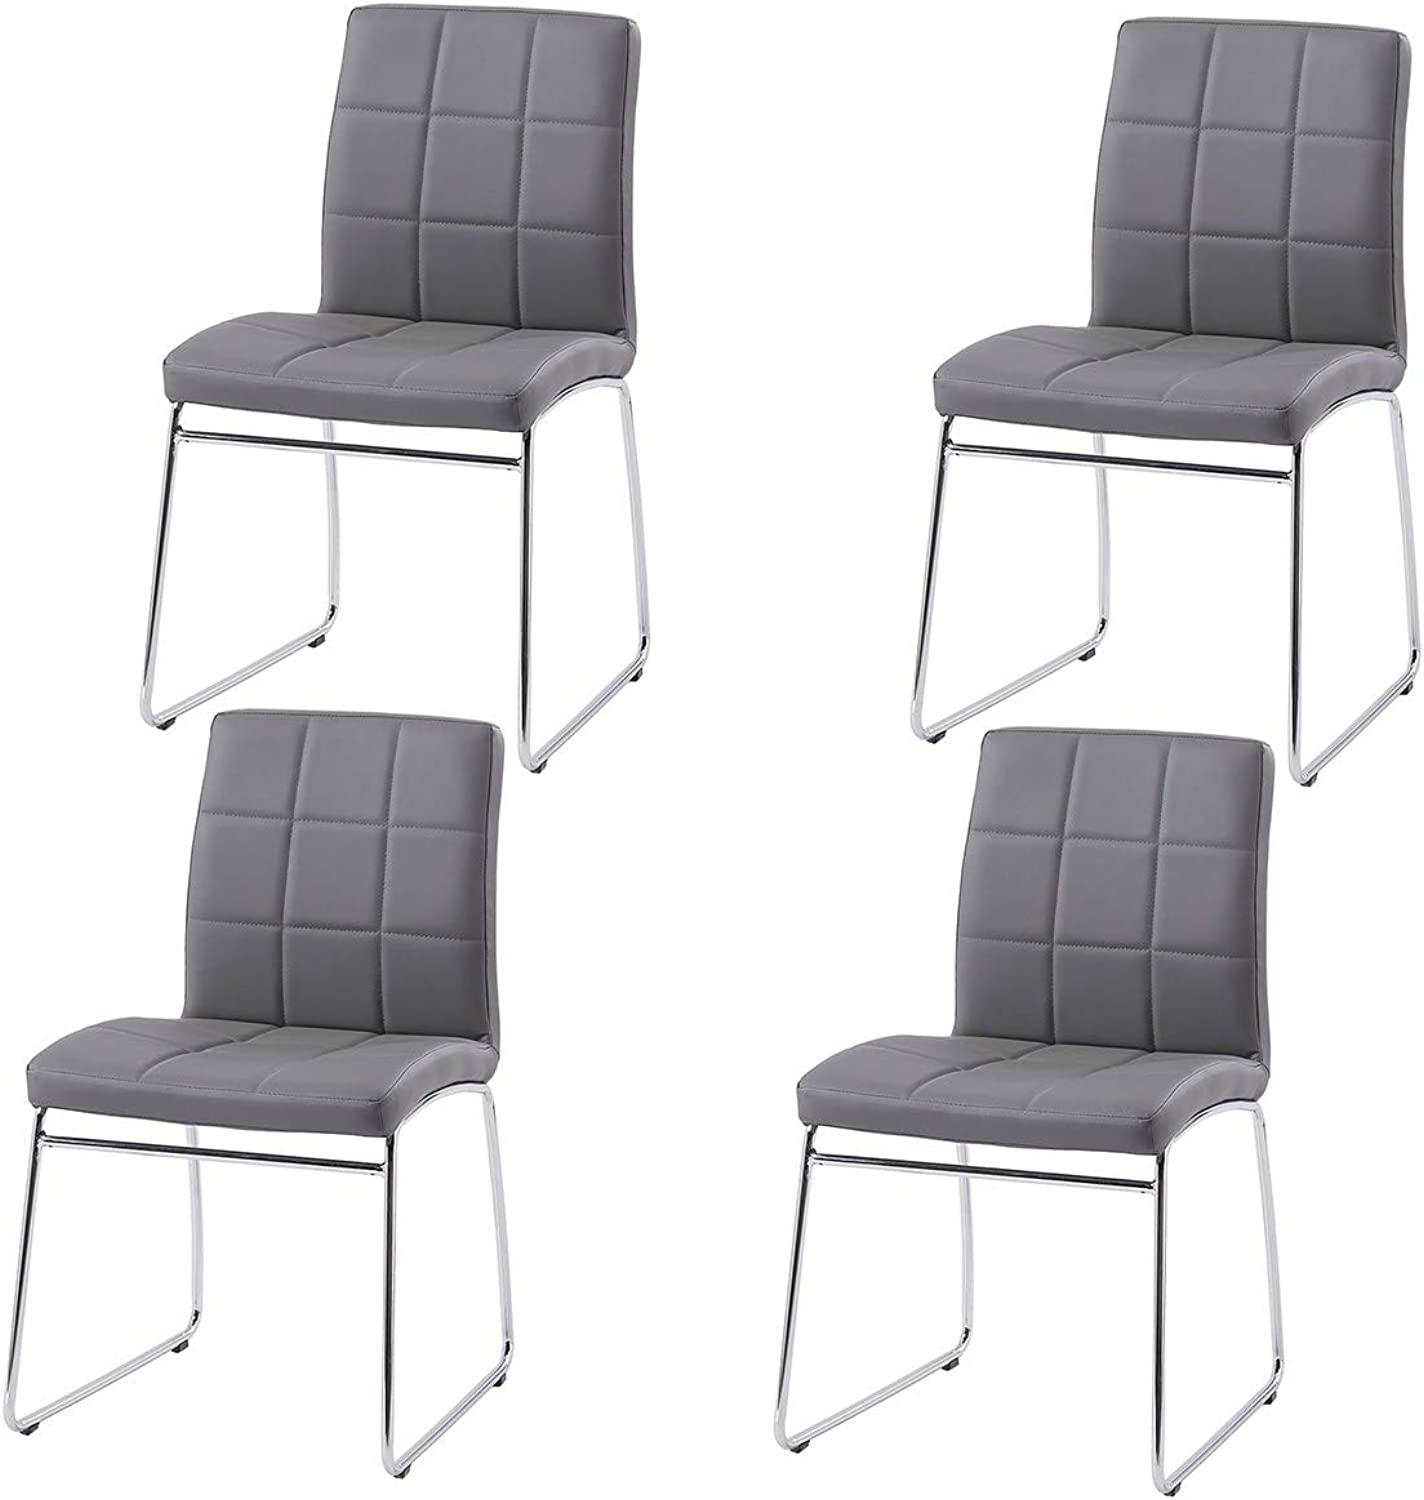 GIZZA Multi Purpose Dining Chairs Faux Leather Upholstered Sled Base Chrome Ergonomic Design Padded Seat Home Kitchen Office Waiting Room Use (Grey, 4 Chairs)